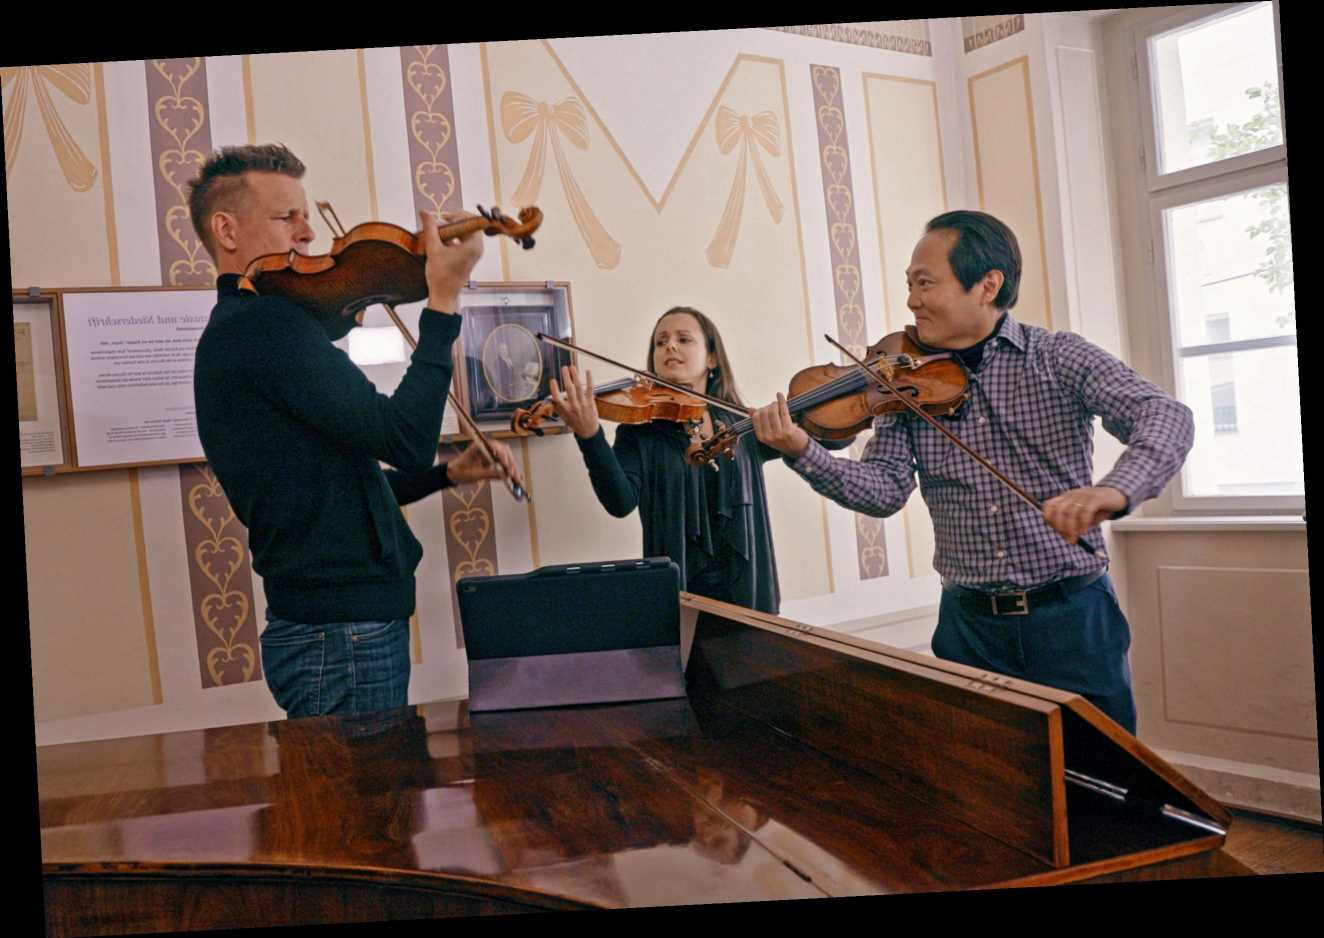 'Now Hear This': The Hybrid Doc Series That Will Make You Fall in Love with Classical Music